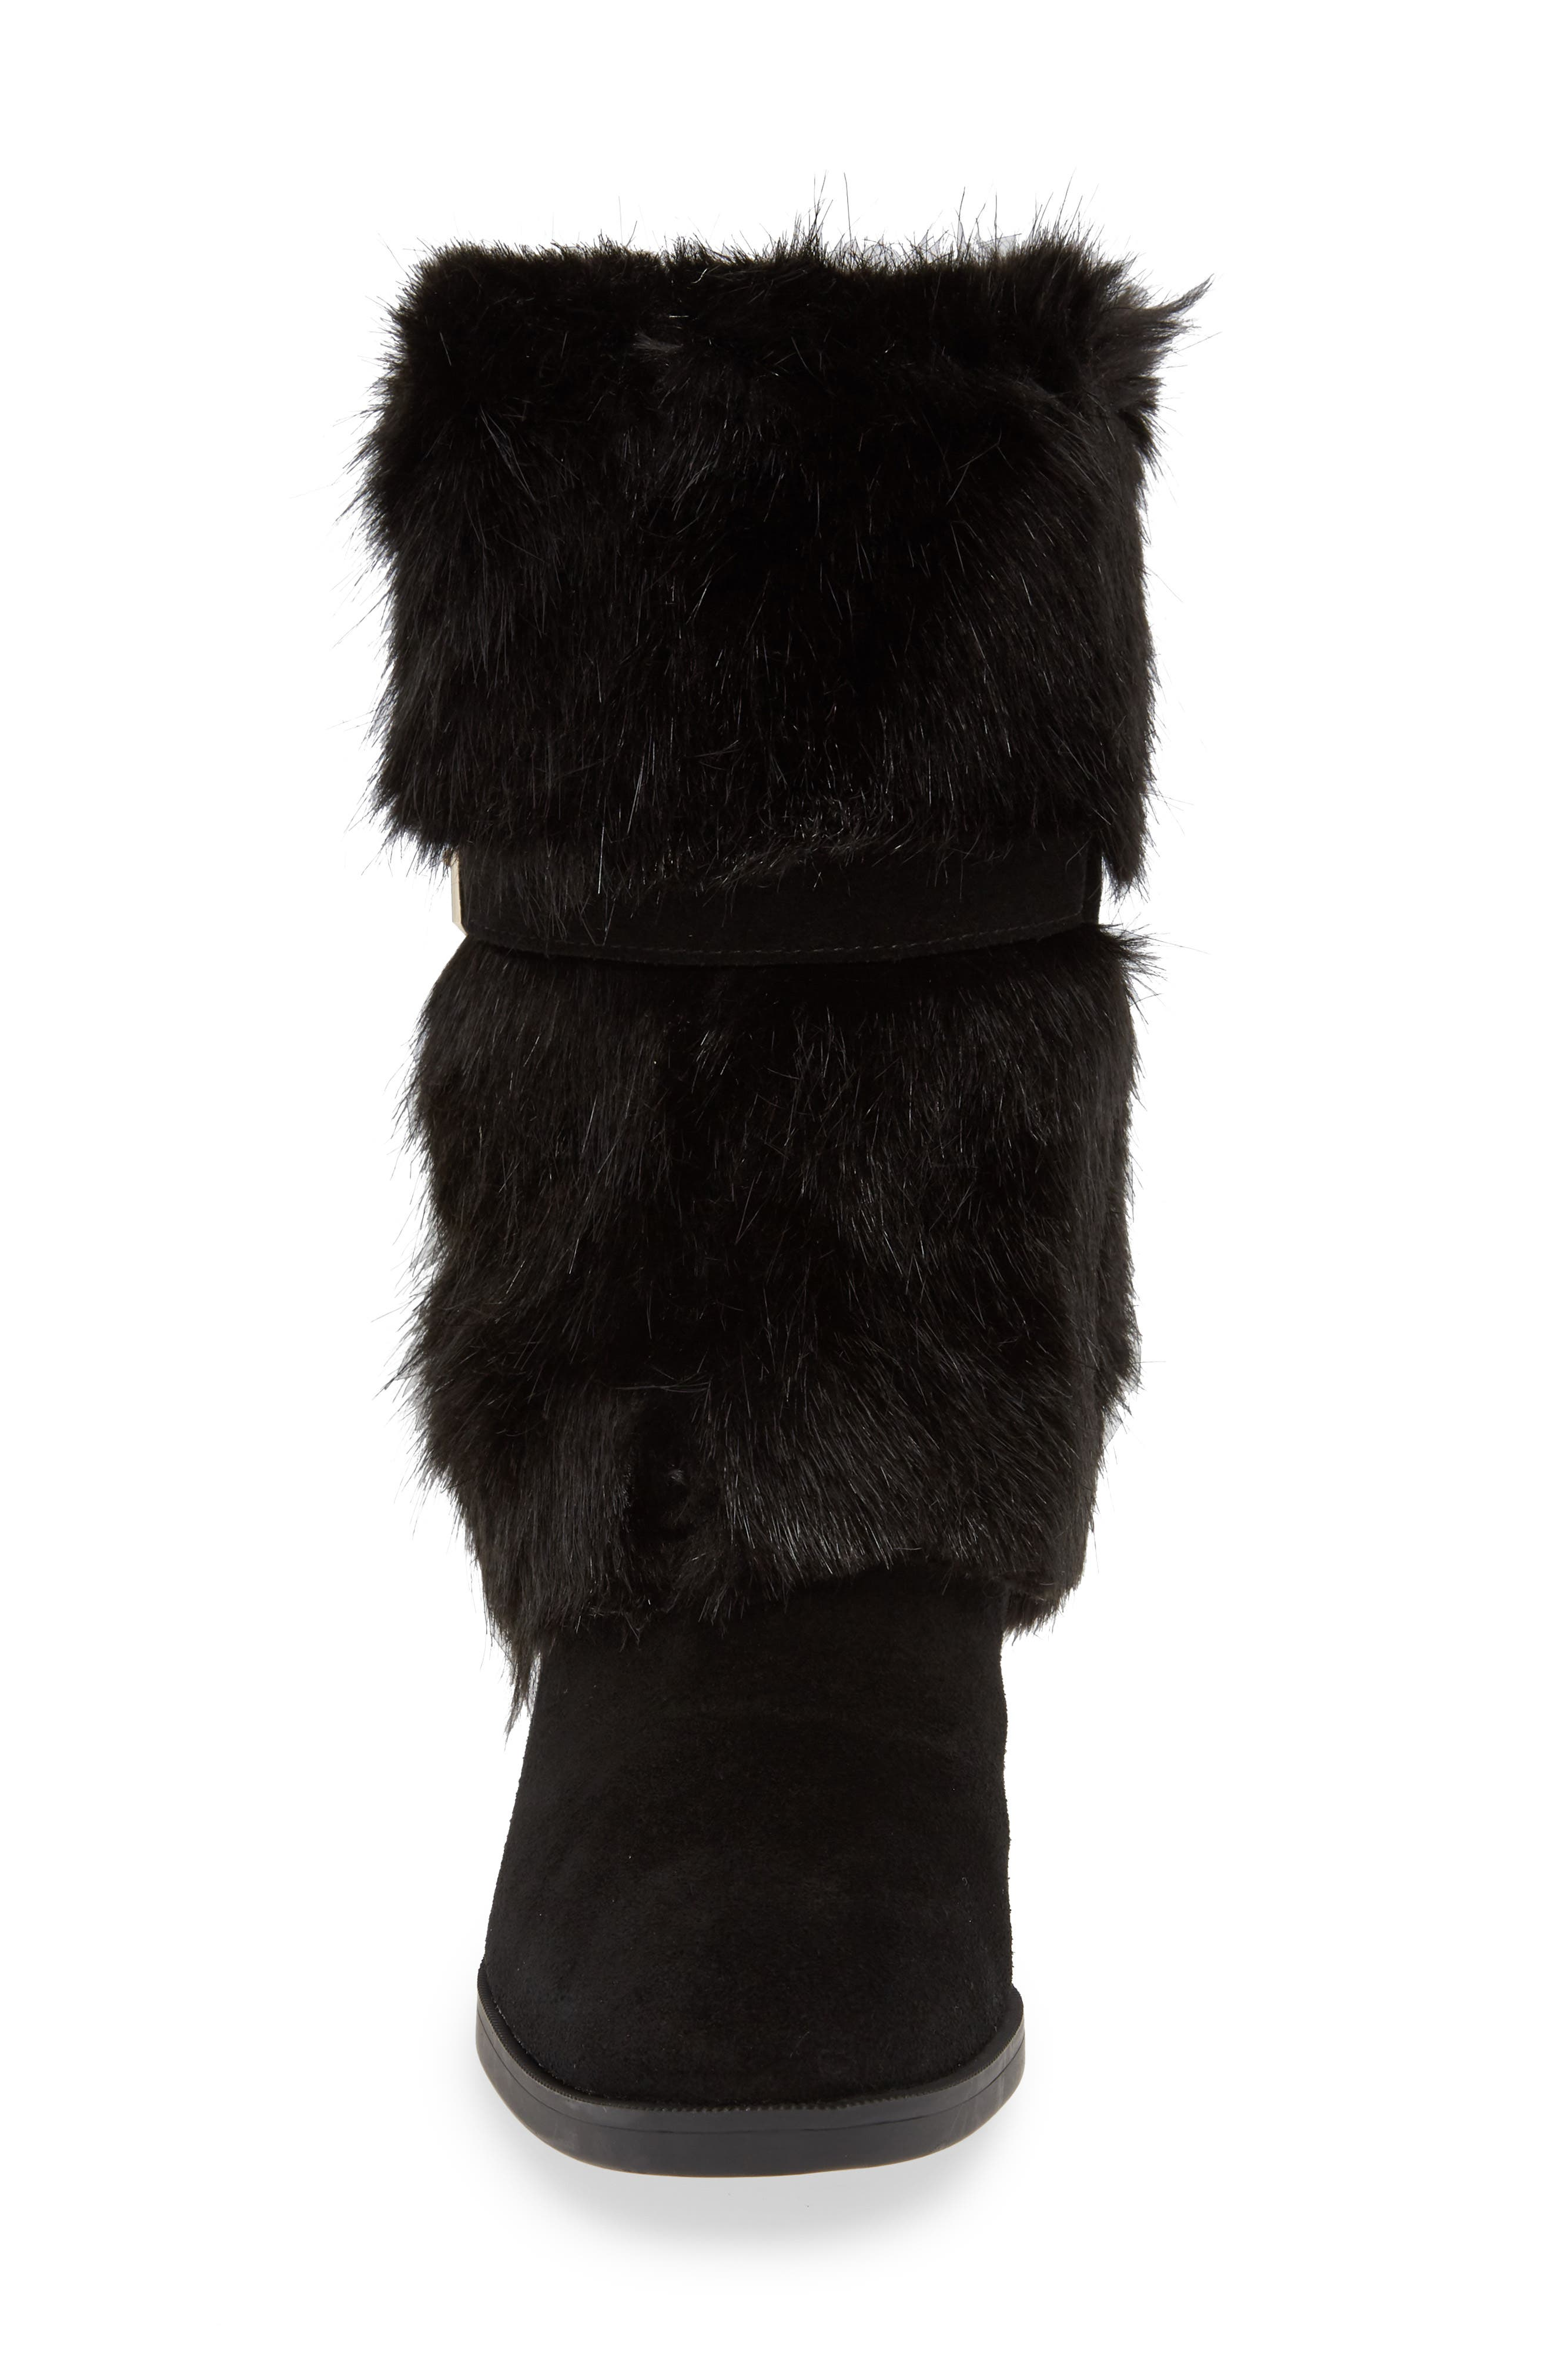 TARYN ROSE, Giselle Water Resistant Faux Fur Boot, Alternate thumbnail 4, color, BLACK SUEDE